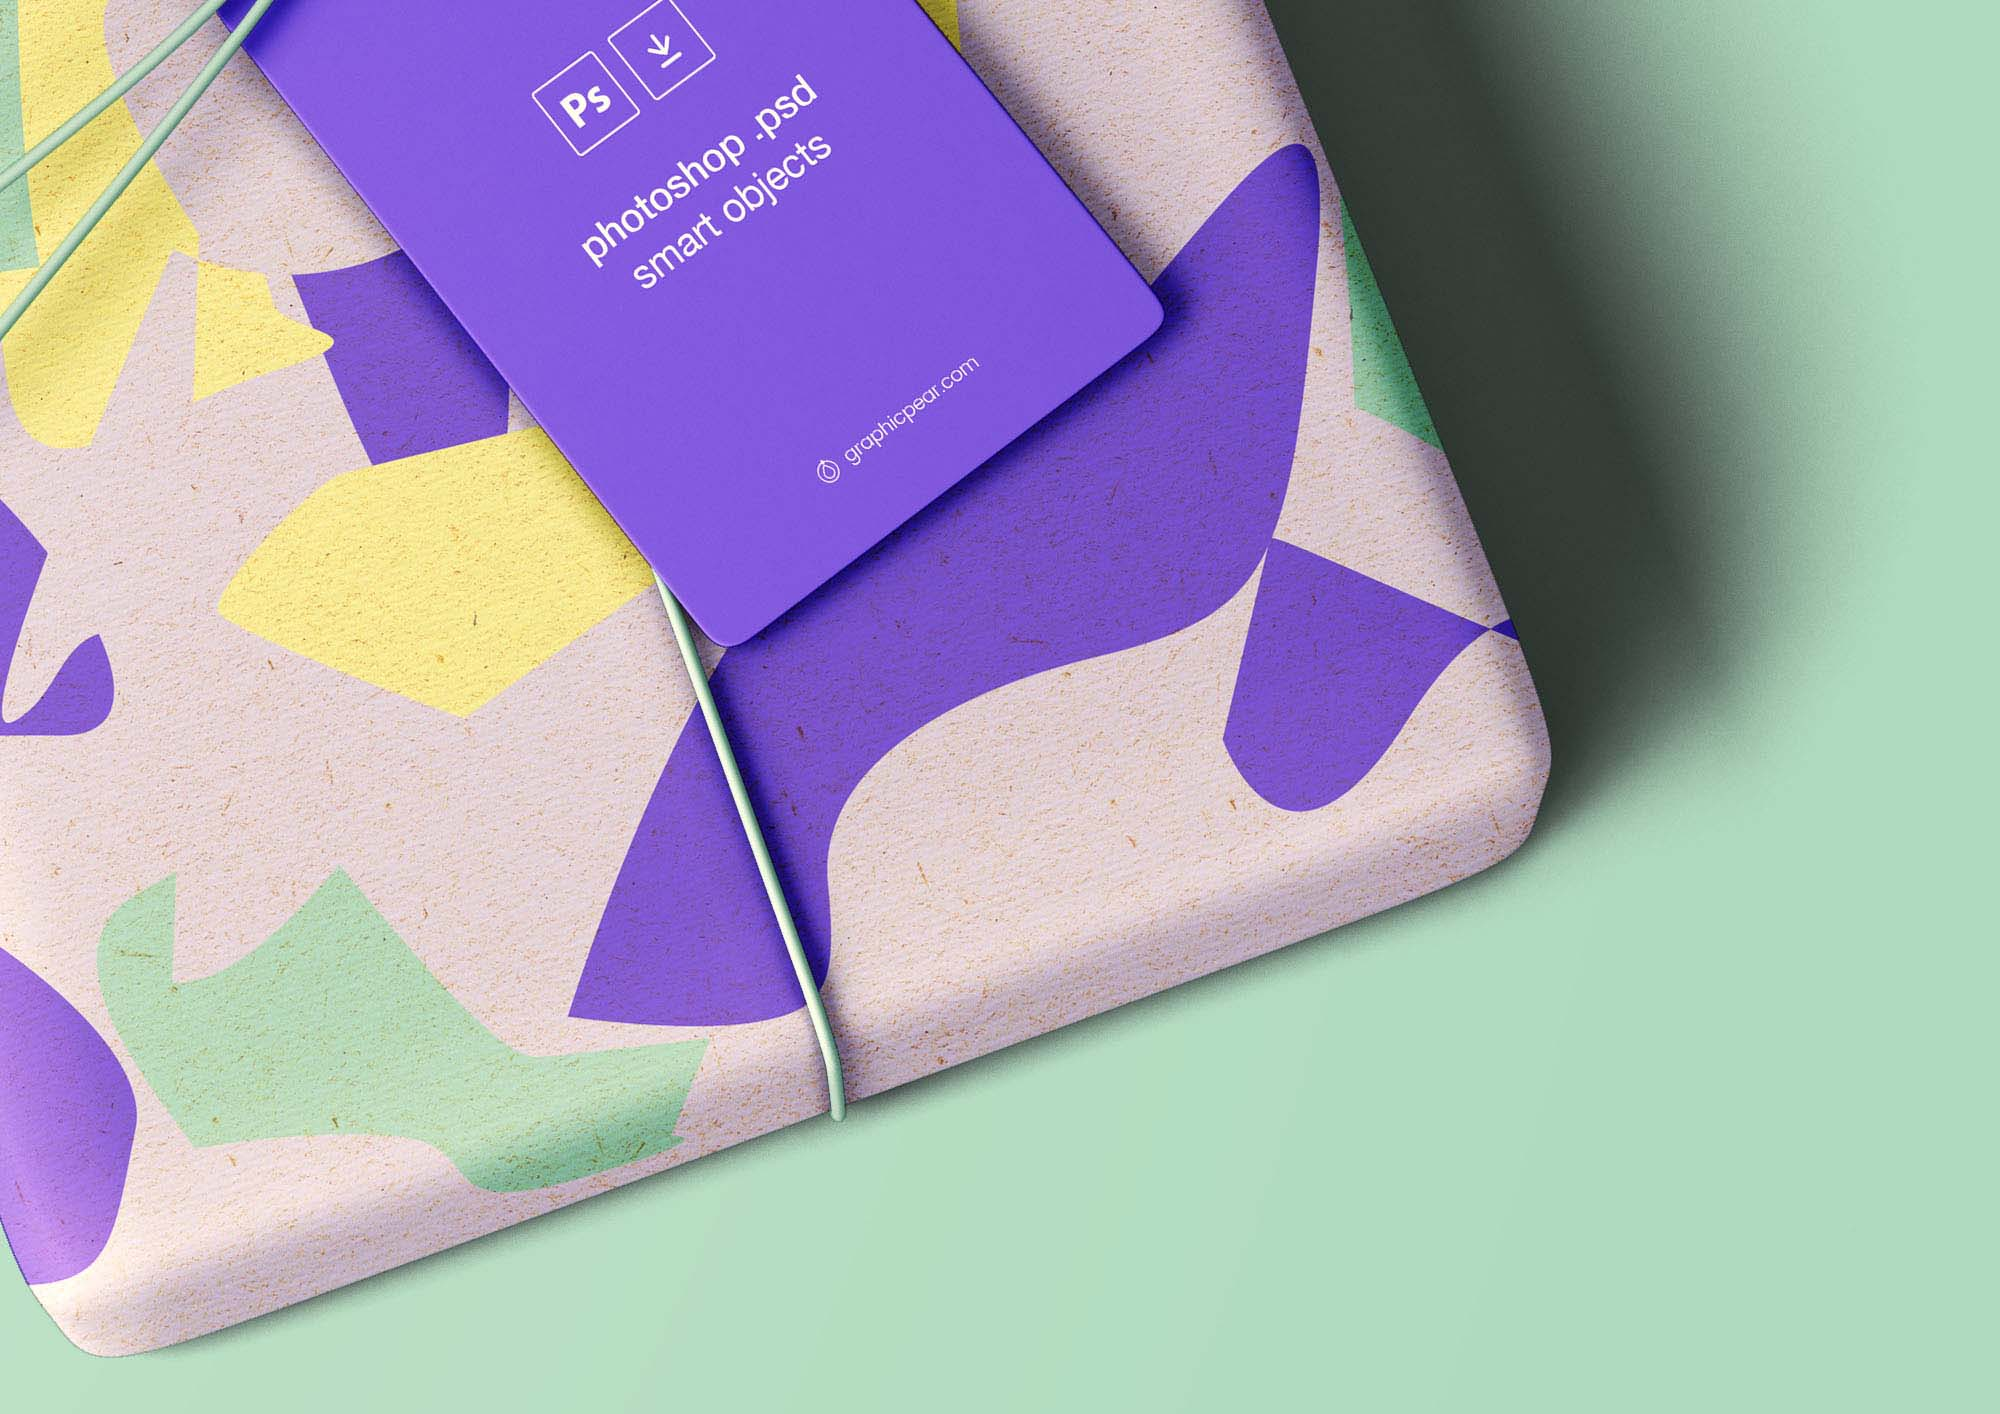 Free Wrapped Gift Mockup Psd